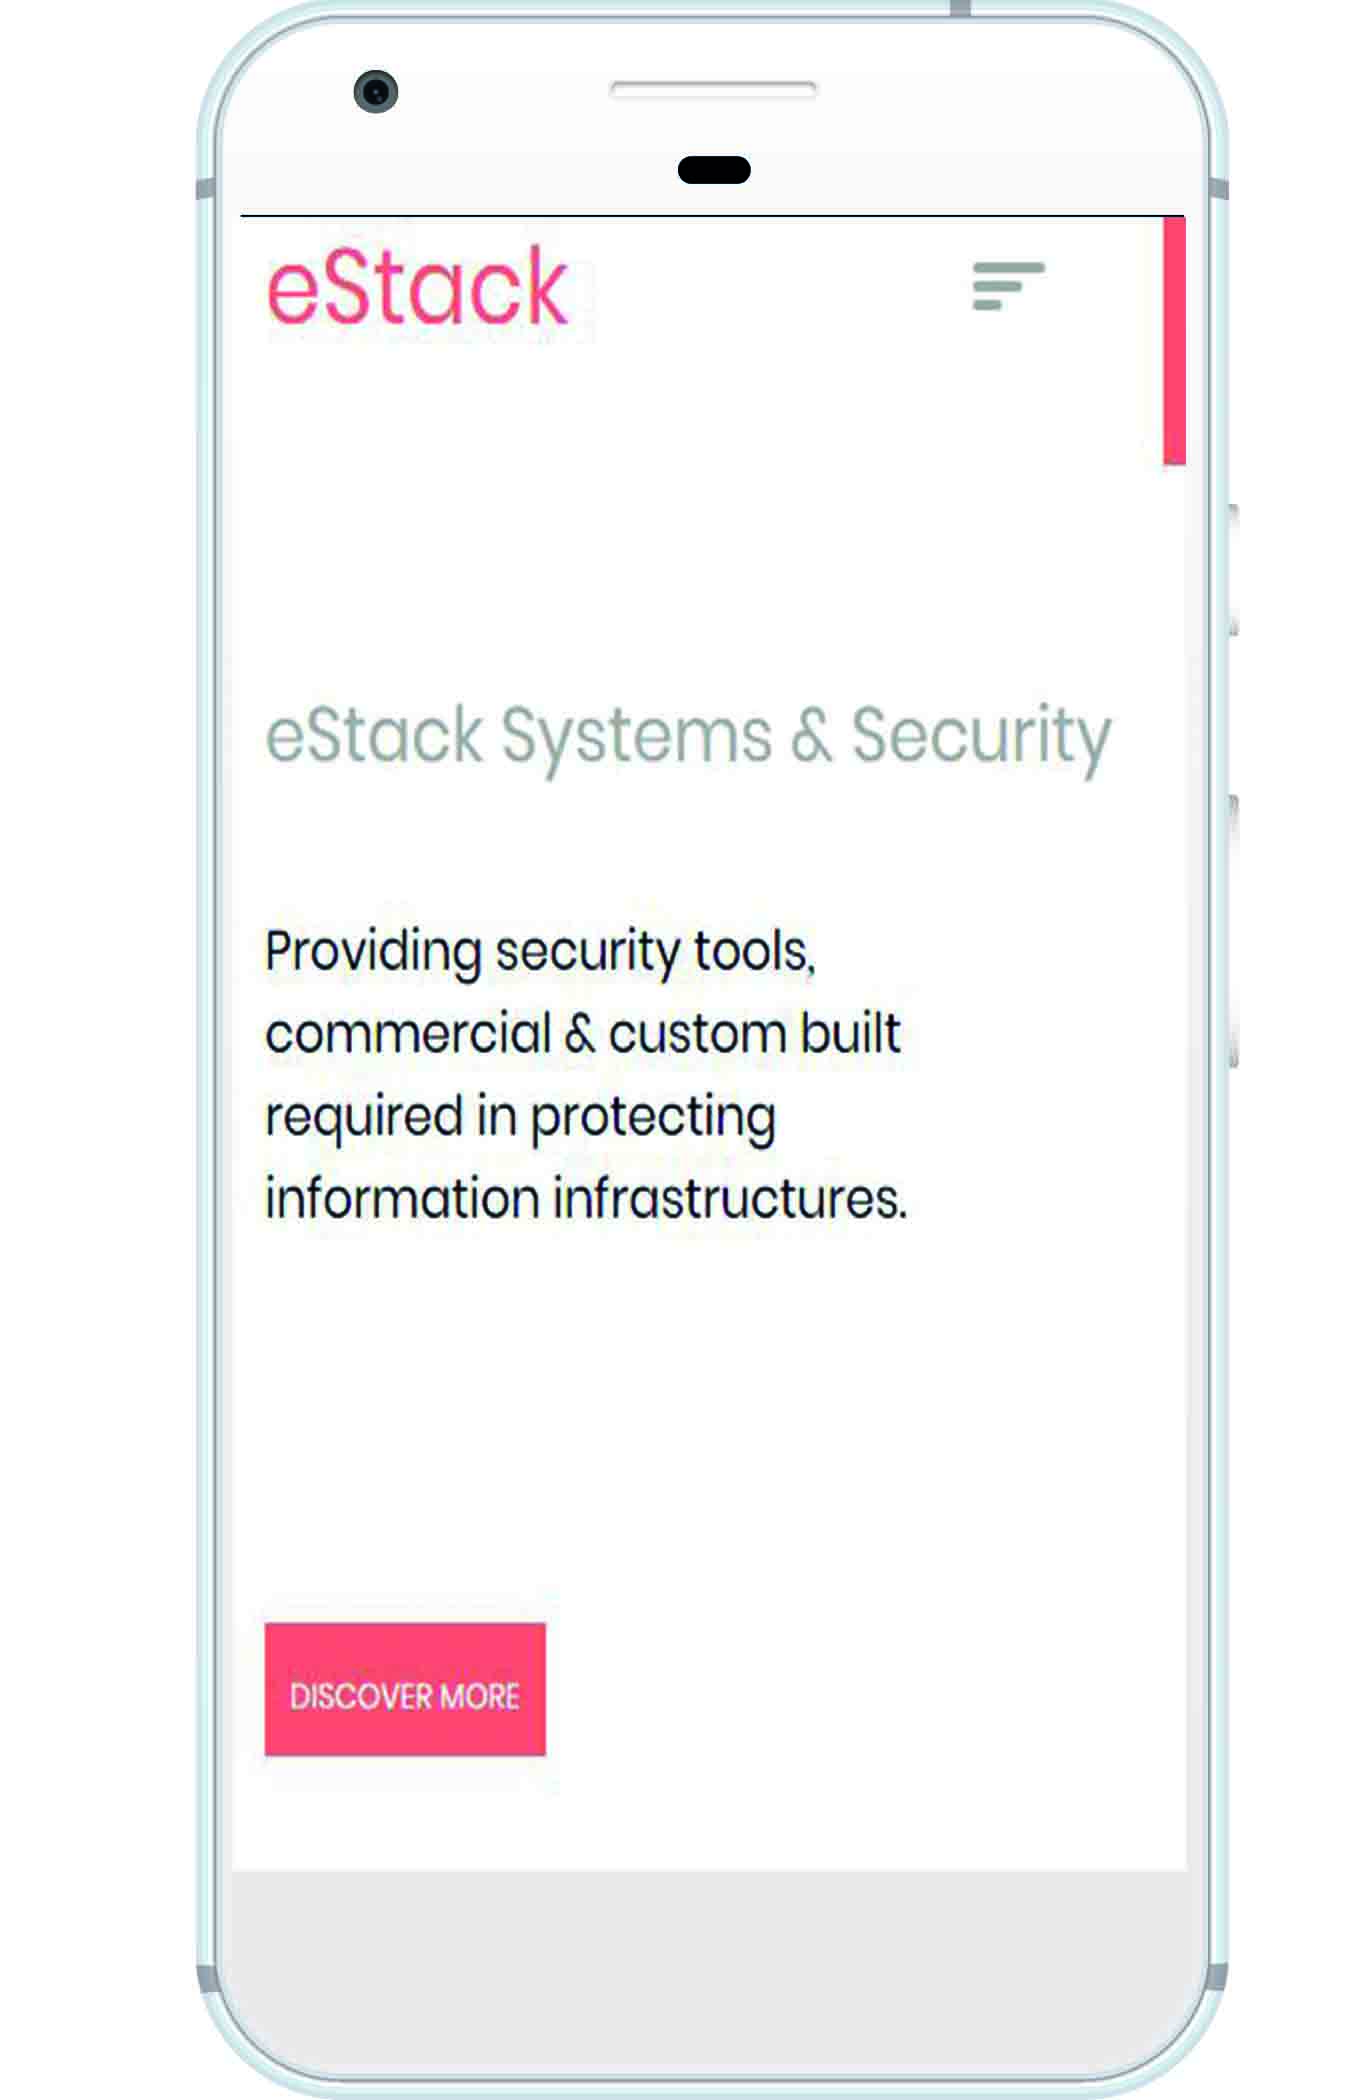 estack_website_mock5